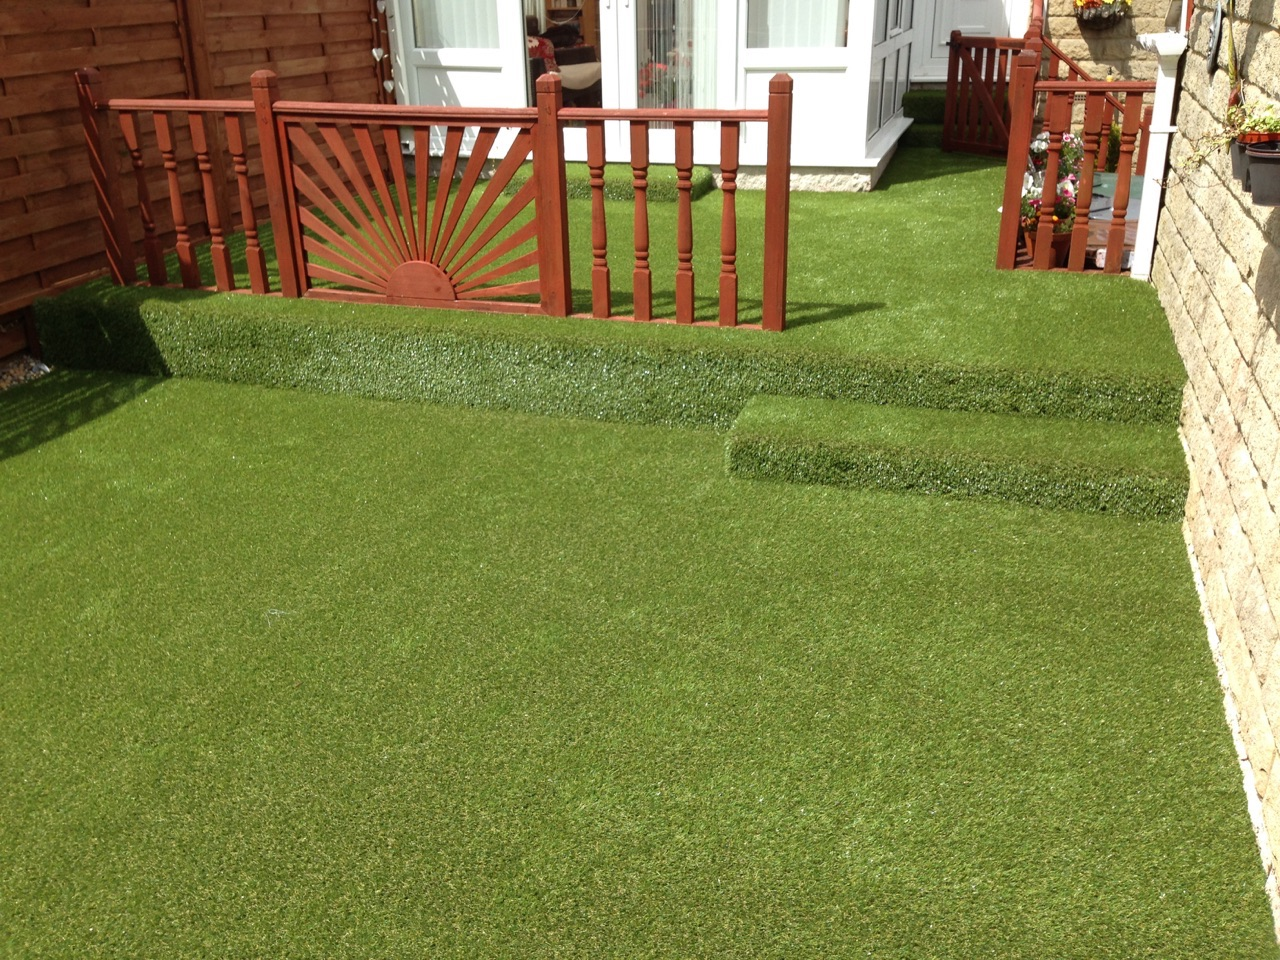 Artificial grass the grass is always green winder carpets and beds